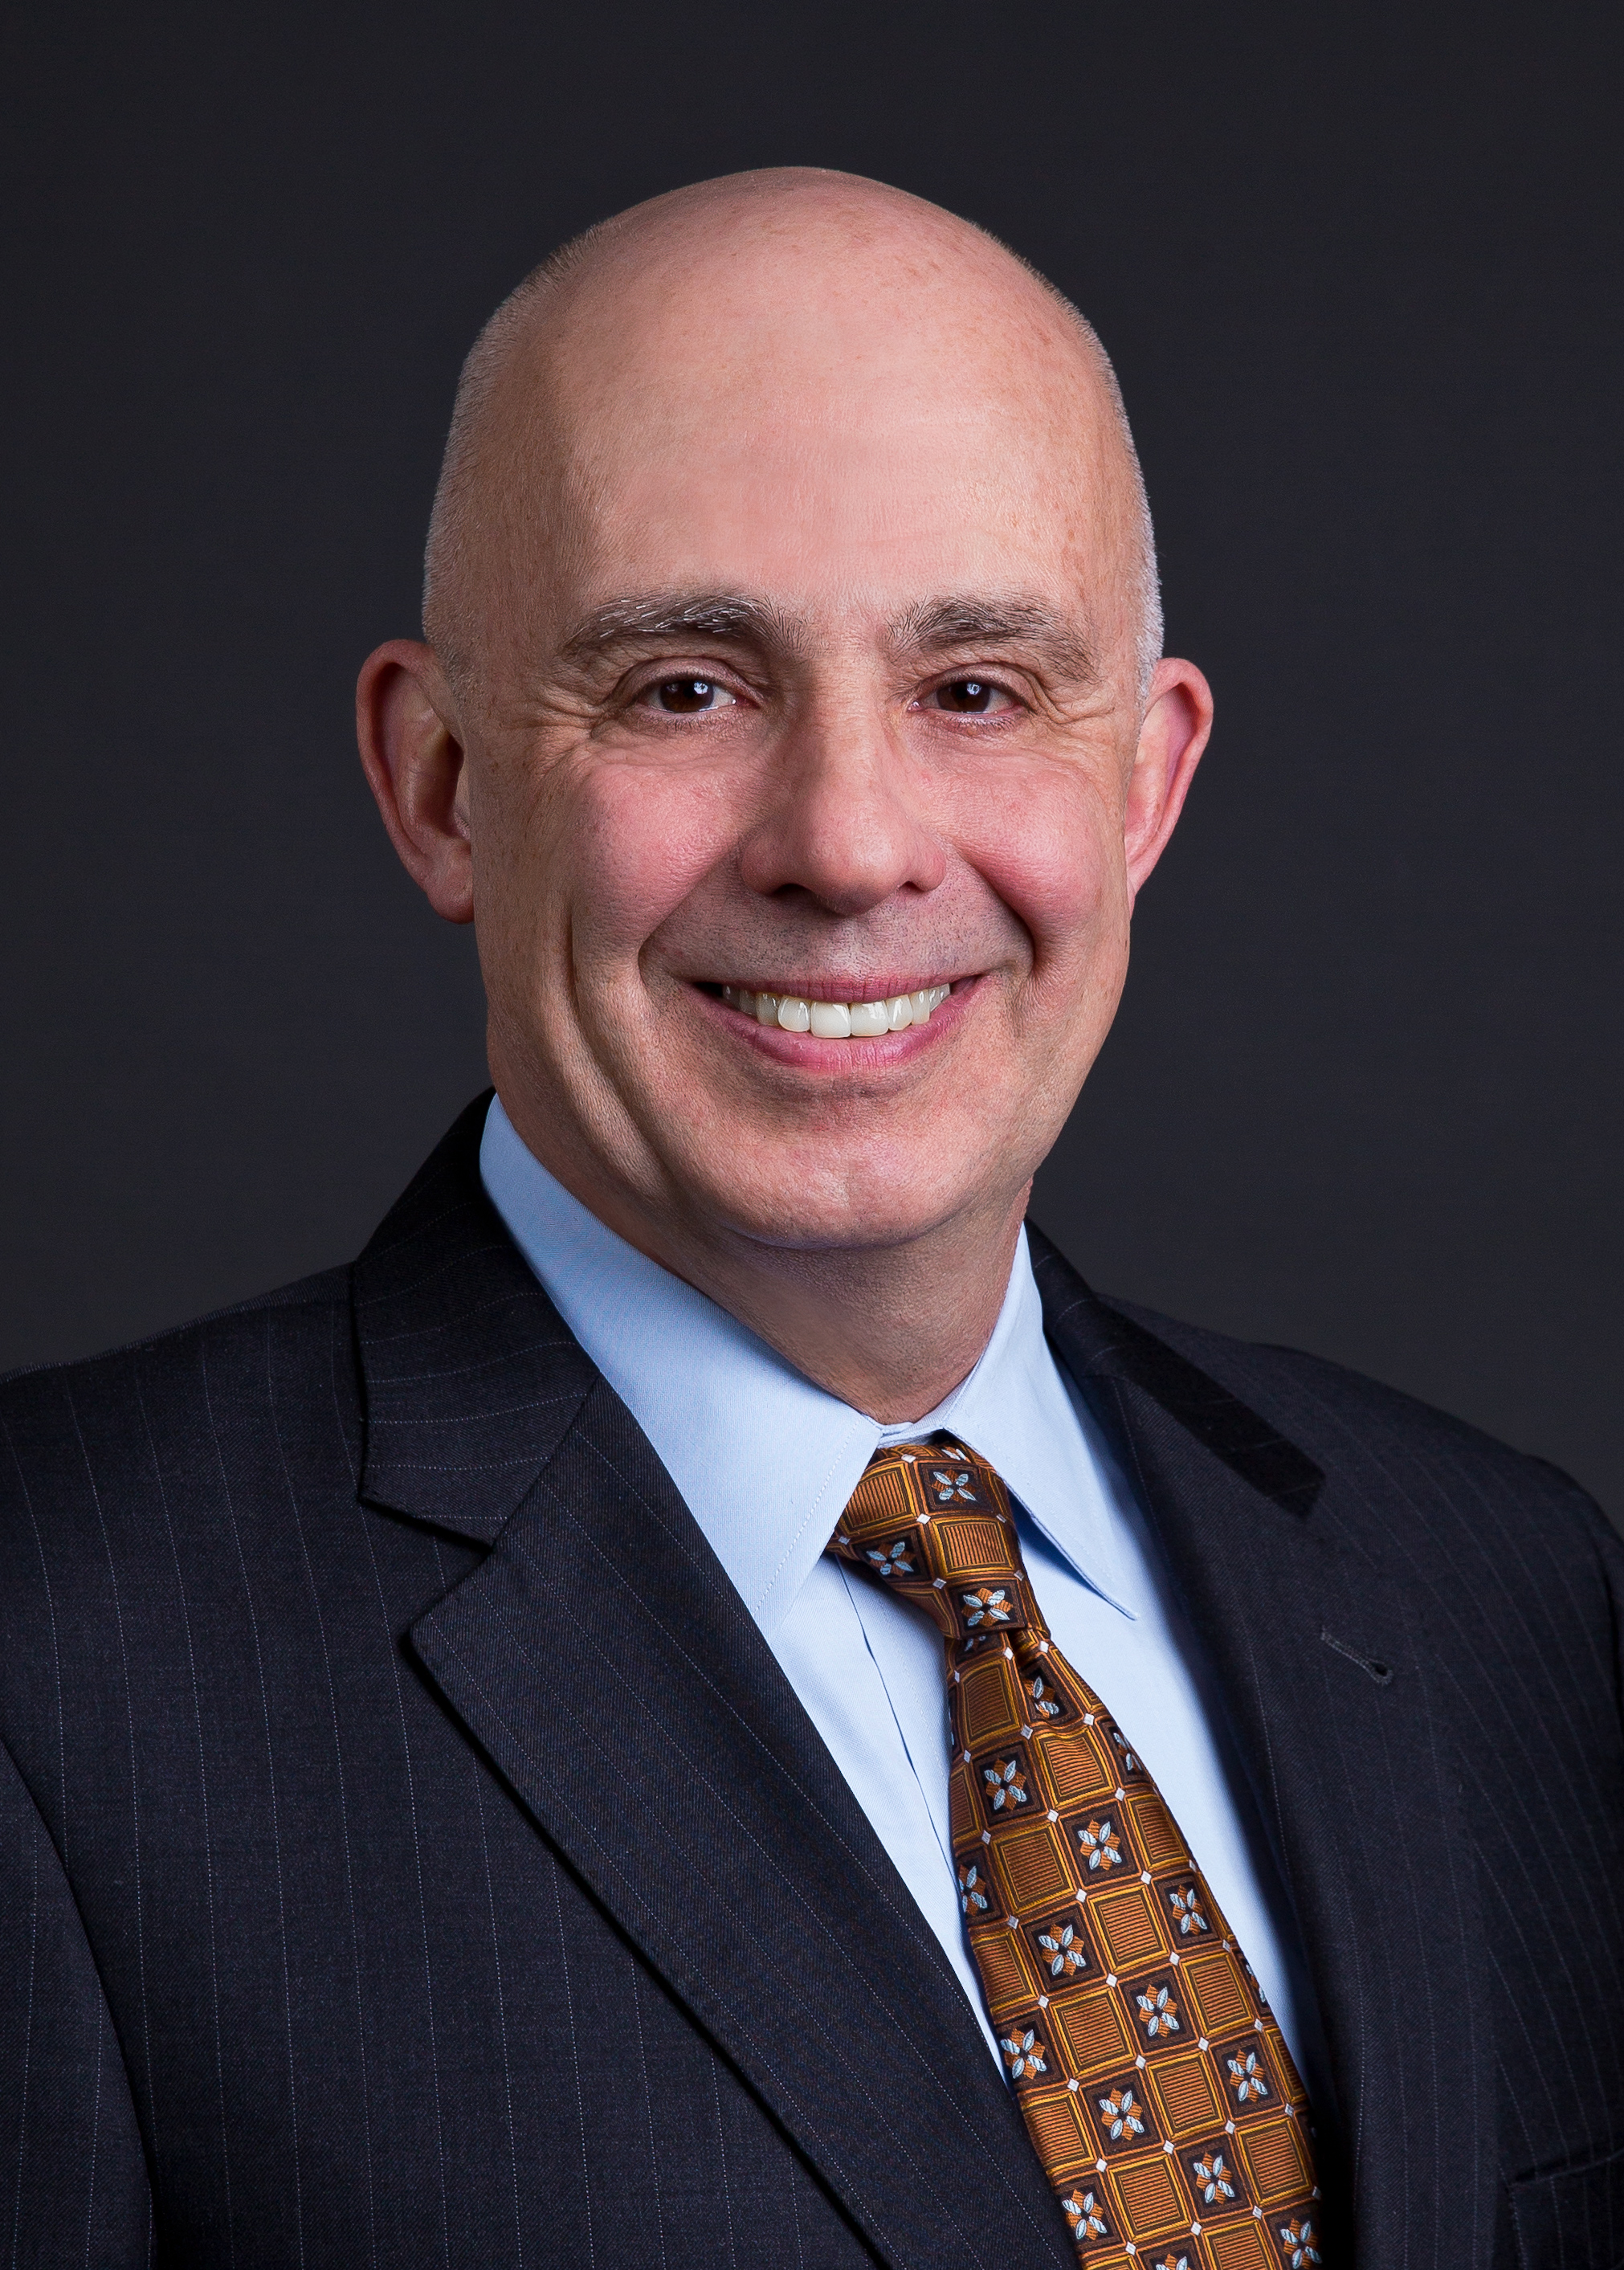 Andrew Twomey, Executive Vice President and General Manager of ManTech's Defense Sector